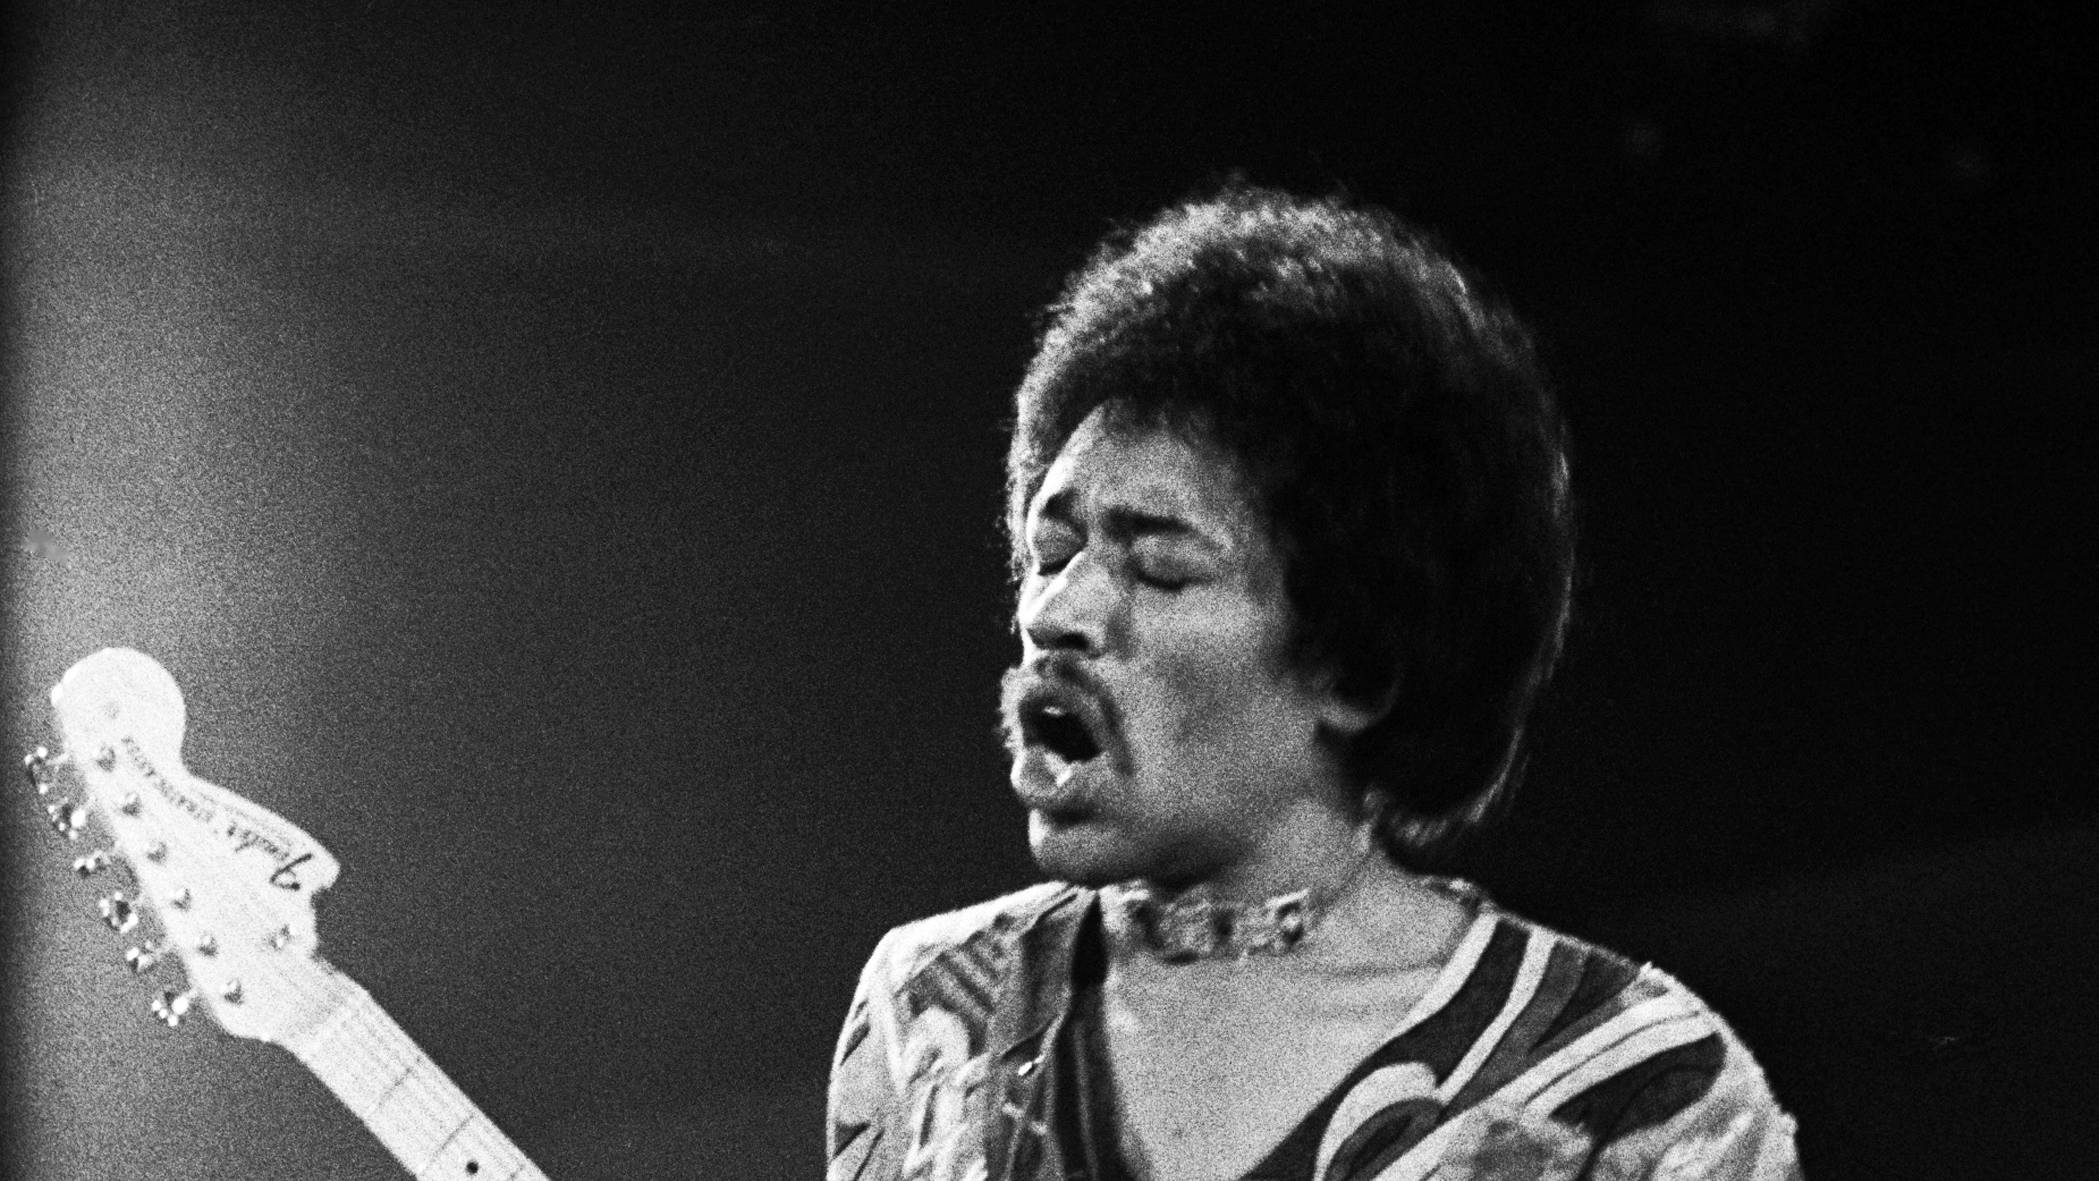 Where was Jimi Hendrix's final gig and what did he play?